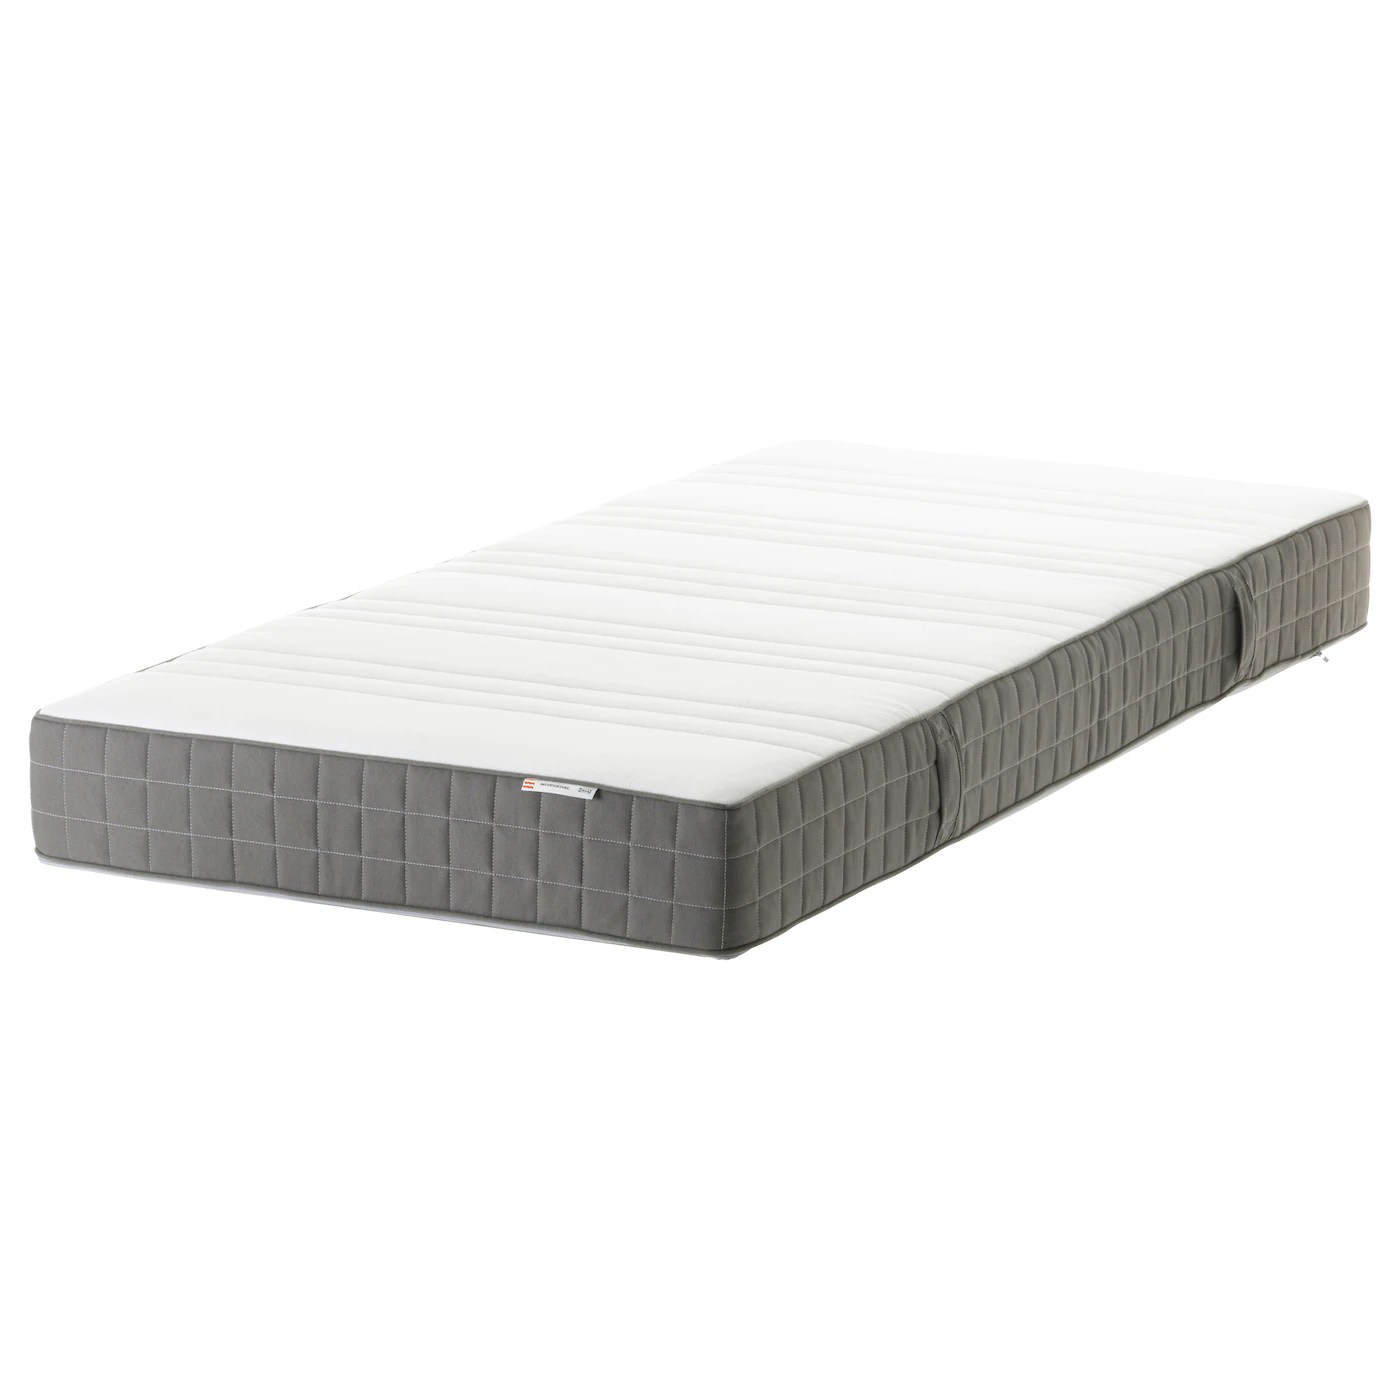 Matelas 80x190 Ikea Morgedal Memory Foam Mattress Medium Firm Dark Grey